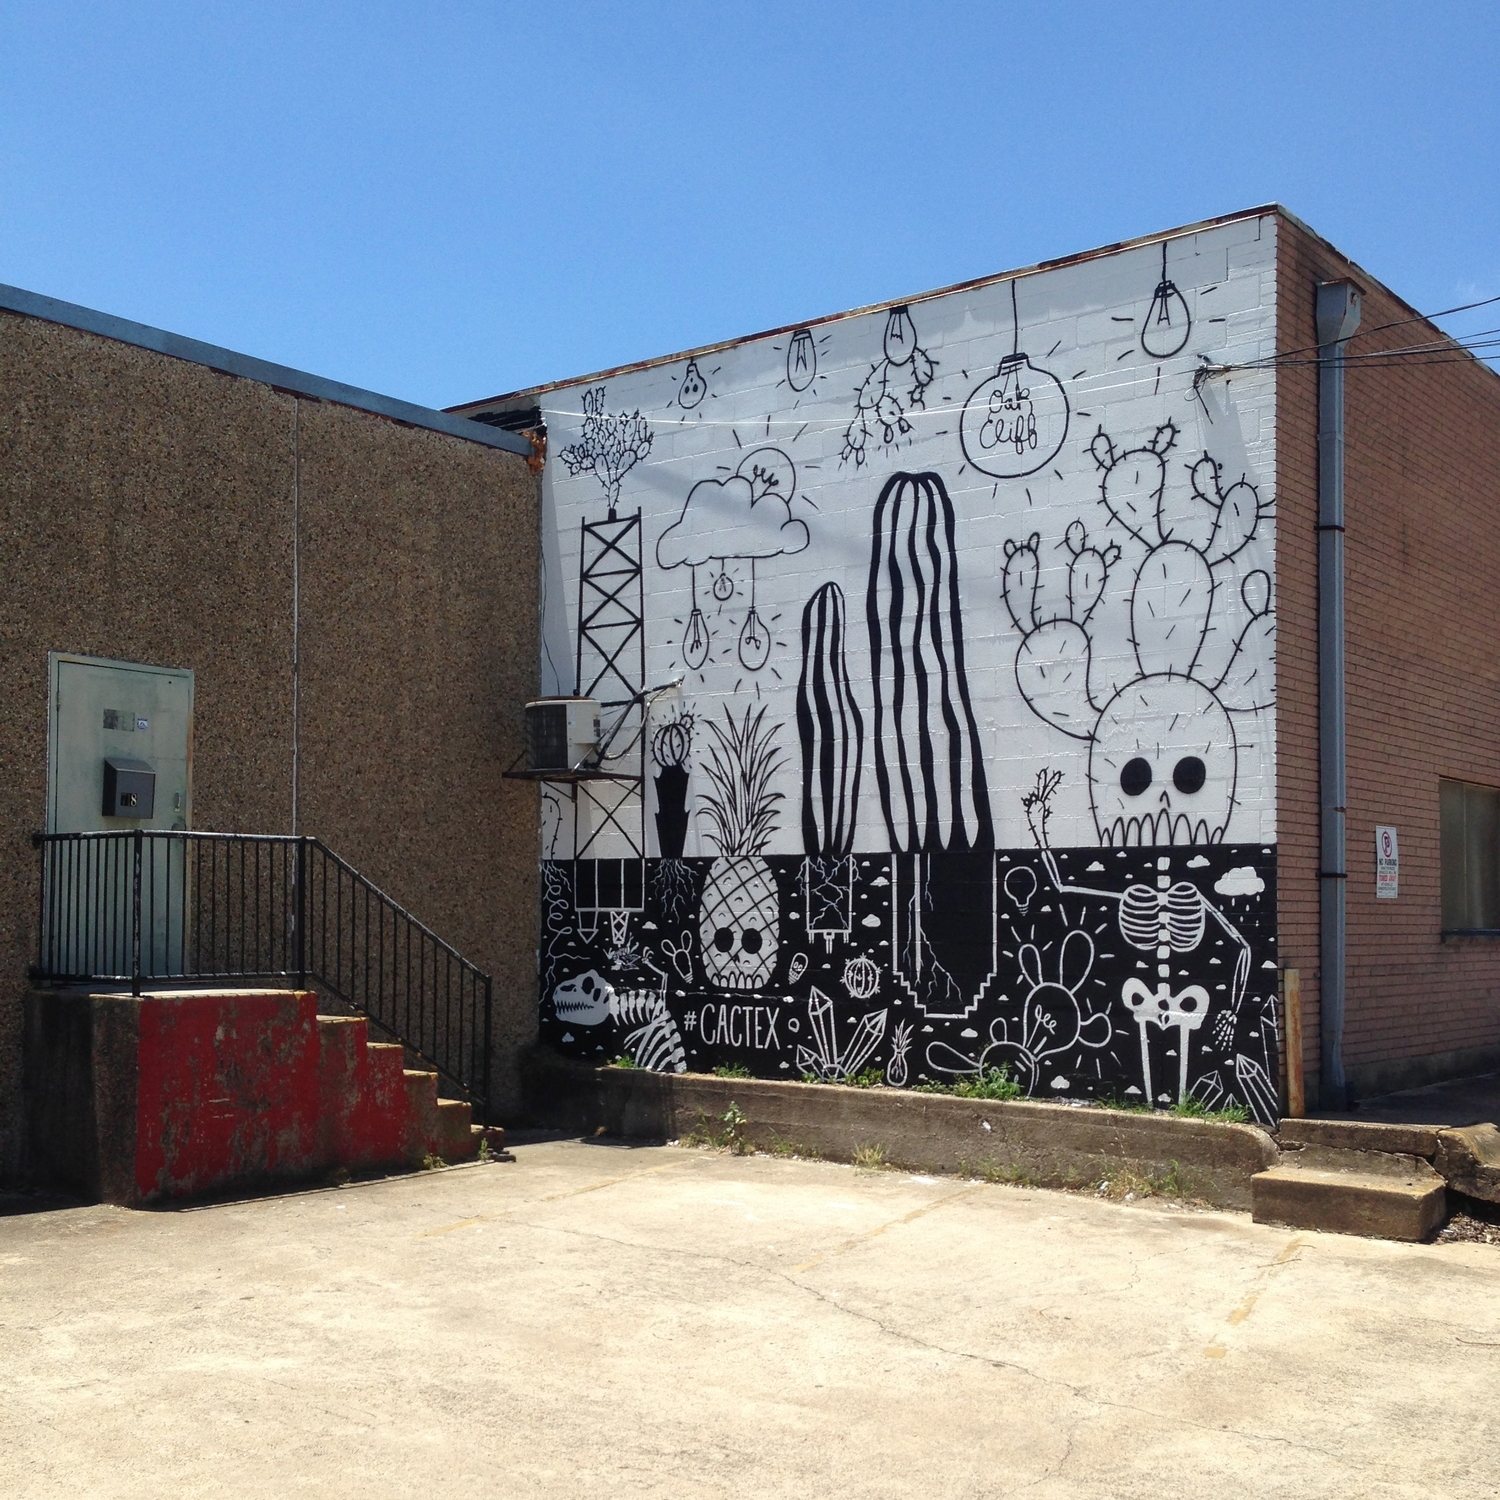 Cactex   Oak Cliff, June 2015  Commissioned by  Mini Fab .